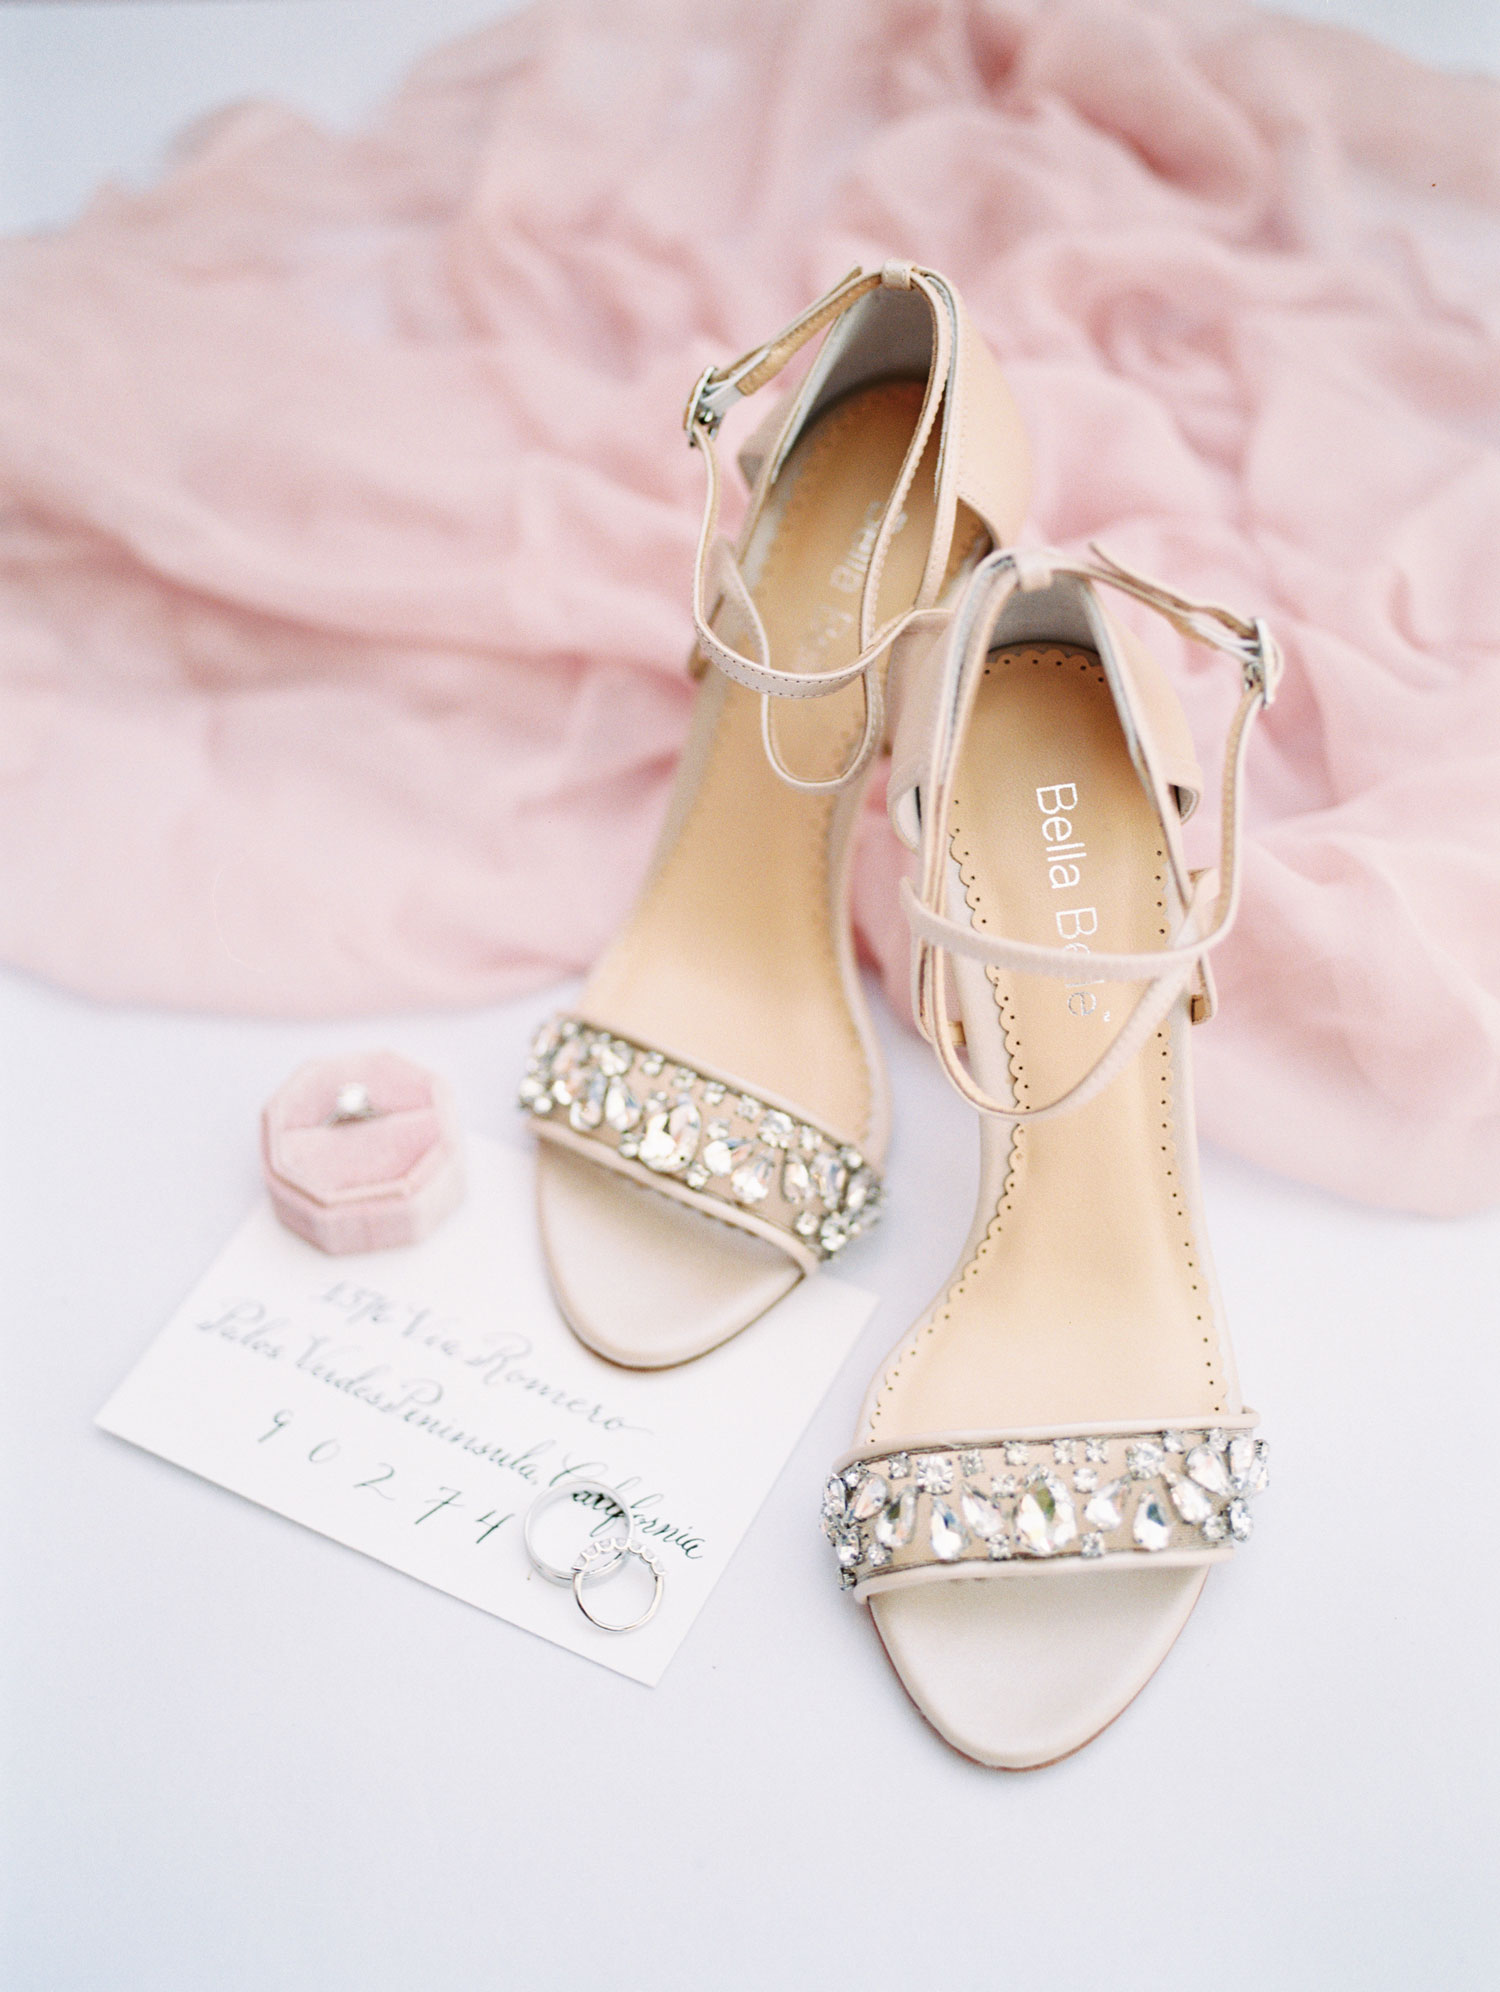 nude blush wedding shoes with jewel crystal toe detail sandals